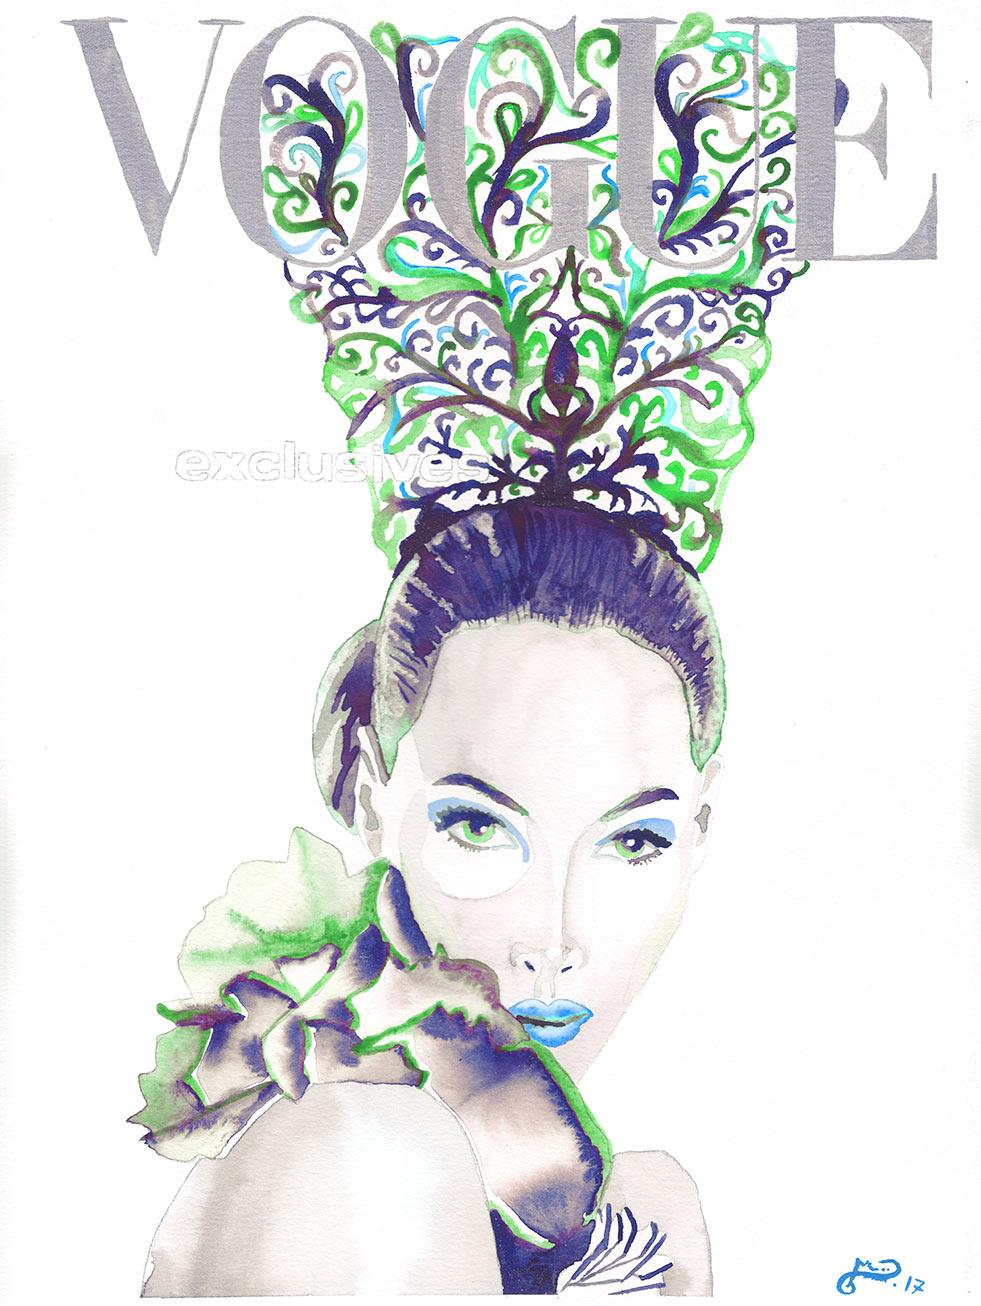 scan-vogue-cristy-turlington-peineta-verde-acuarela